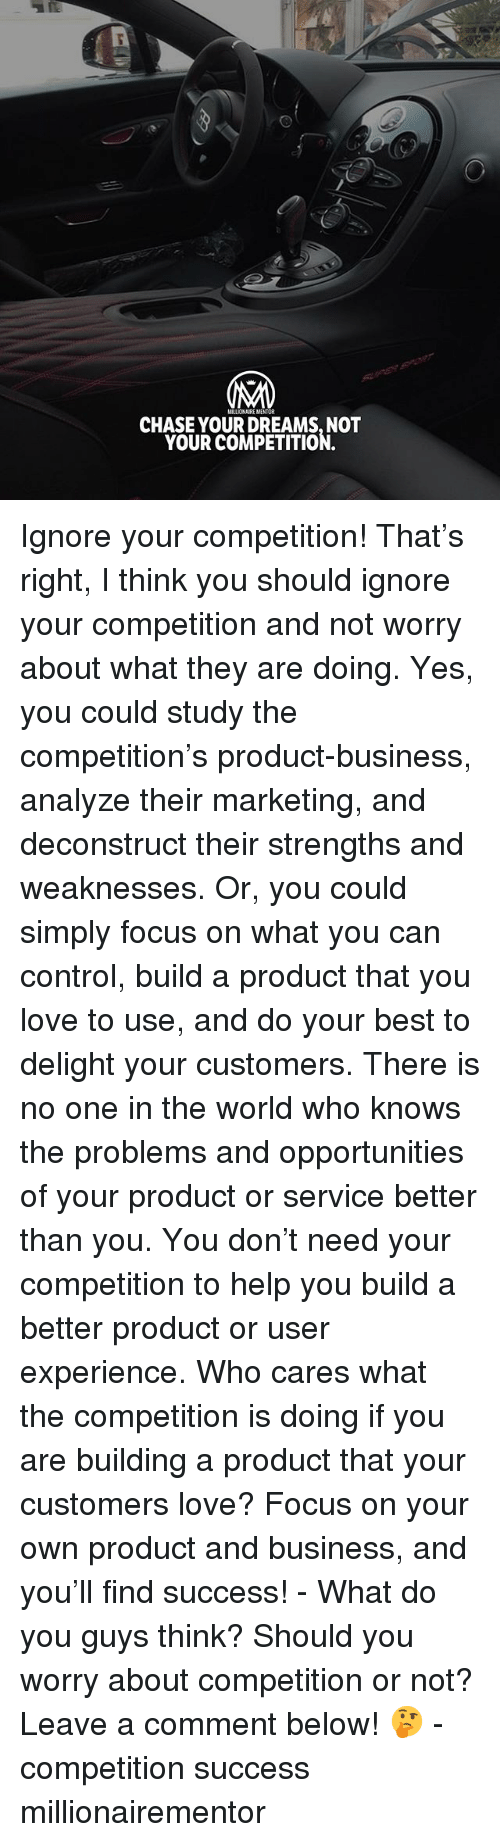 Love, Memes, and Control: 0  MILUIONAIRE MENTOR  CHASE YOUR DREAMS, NOT  YOUR COMPETITION. Ignore your competition! That's right, I think you should ignore your competition and not worry about what they are doing. Yes, you could study the competition's product-business, analyze their marketing, and deconstruct their strengths and weaknesses. Or, you could simply focus on what you can control, build a product that you love to use, and do your best to delight your customers. There is no one in the world who knows the problems and opportunities of your product or service better than you. You don't need your competition to help you build a better product or user experience. Who cares what the competition is doing if you are building a product that your customers love? Focus on your own product and business, and you'll find success! - What do you guys think? Should you worry about competition or not? Leave a comment below! 🤔 - competition success millionairementor